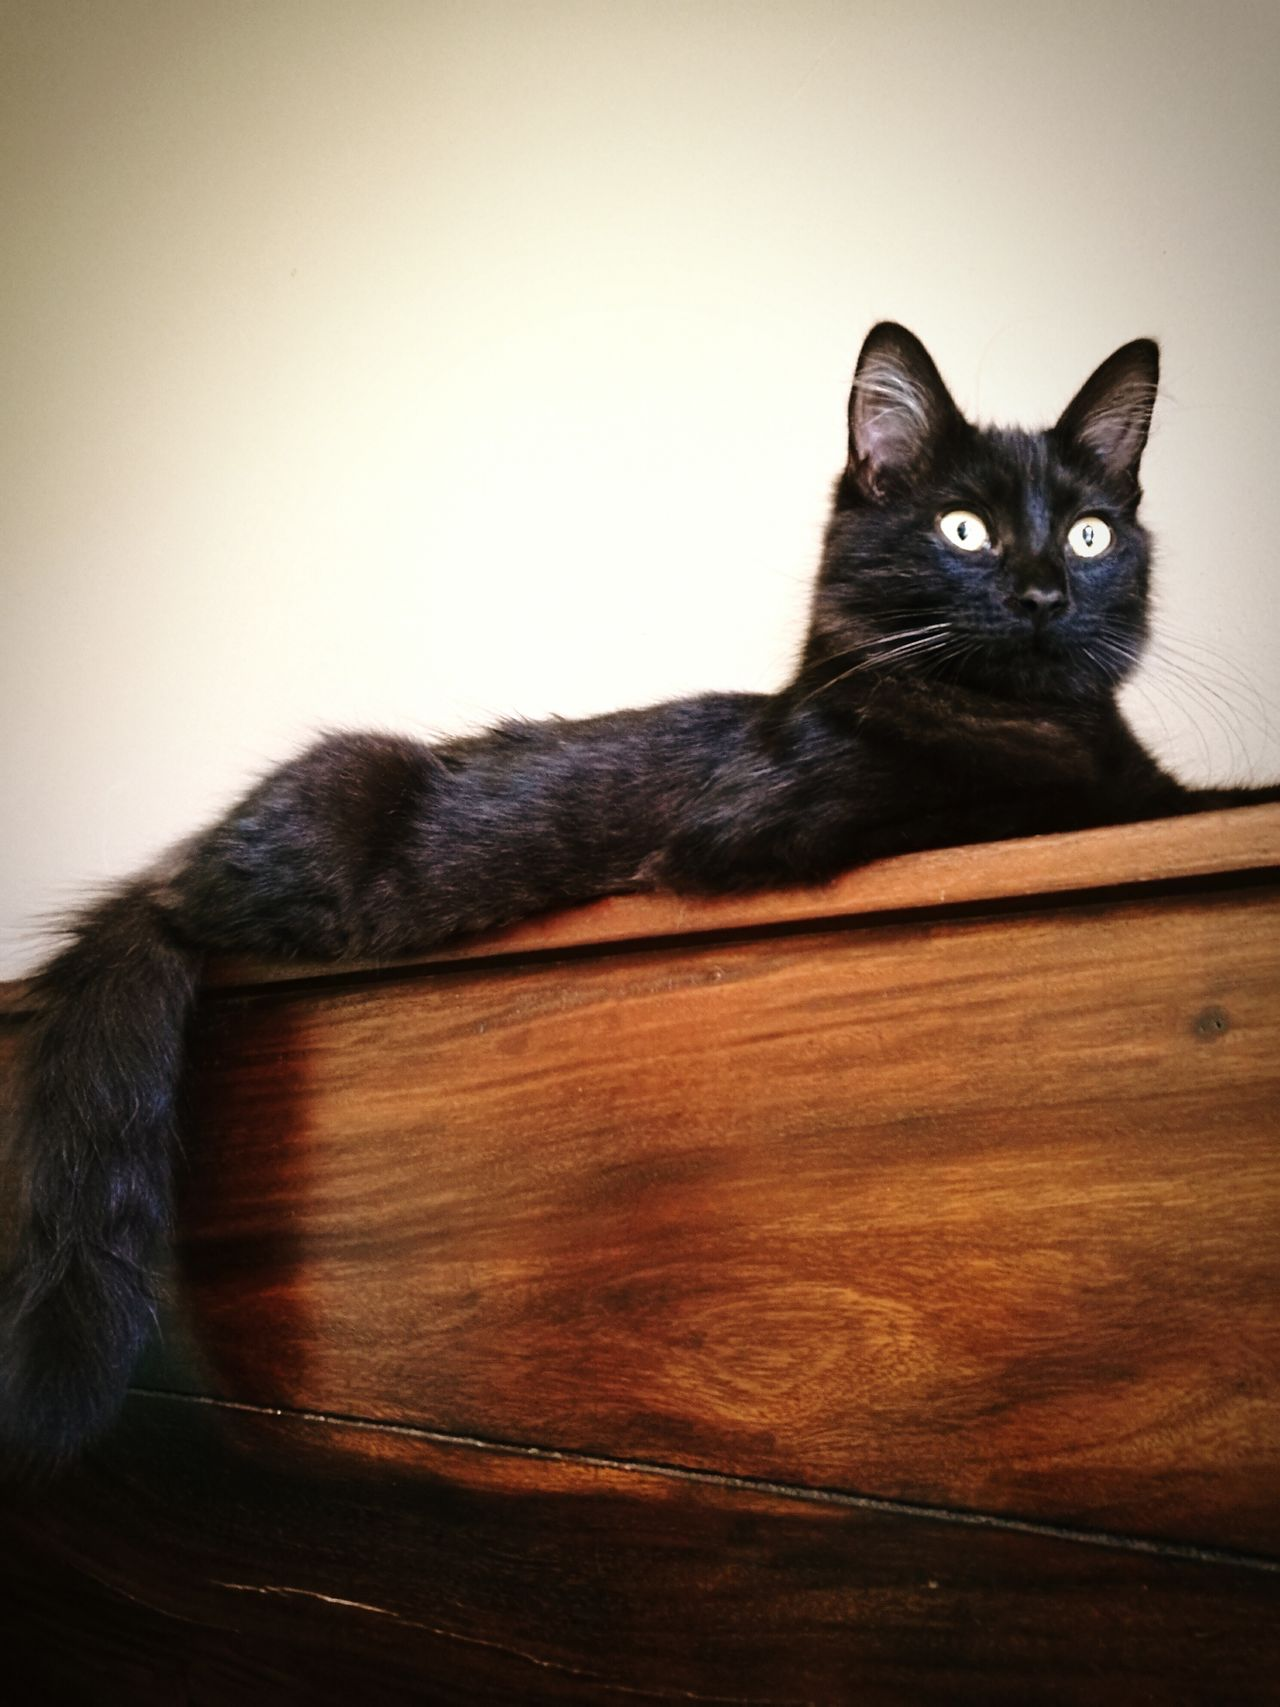 The Kitten First Eyeem Photo Kitten Kittens Kitty Love Black Cat Black Cats Are Beautiful Bedroom View  Long Tail